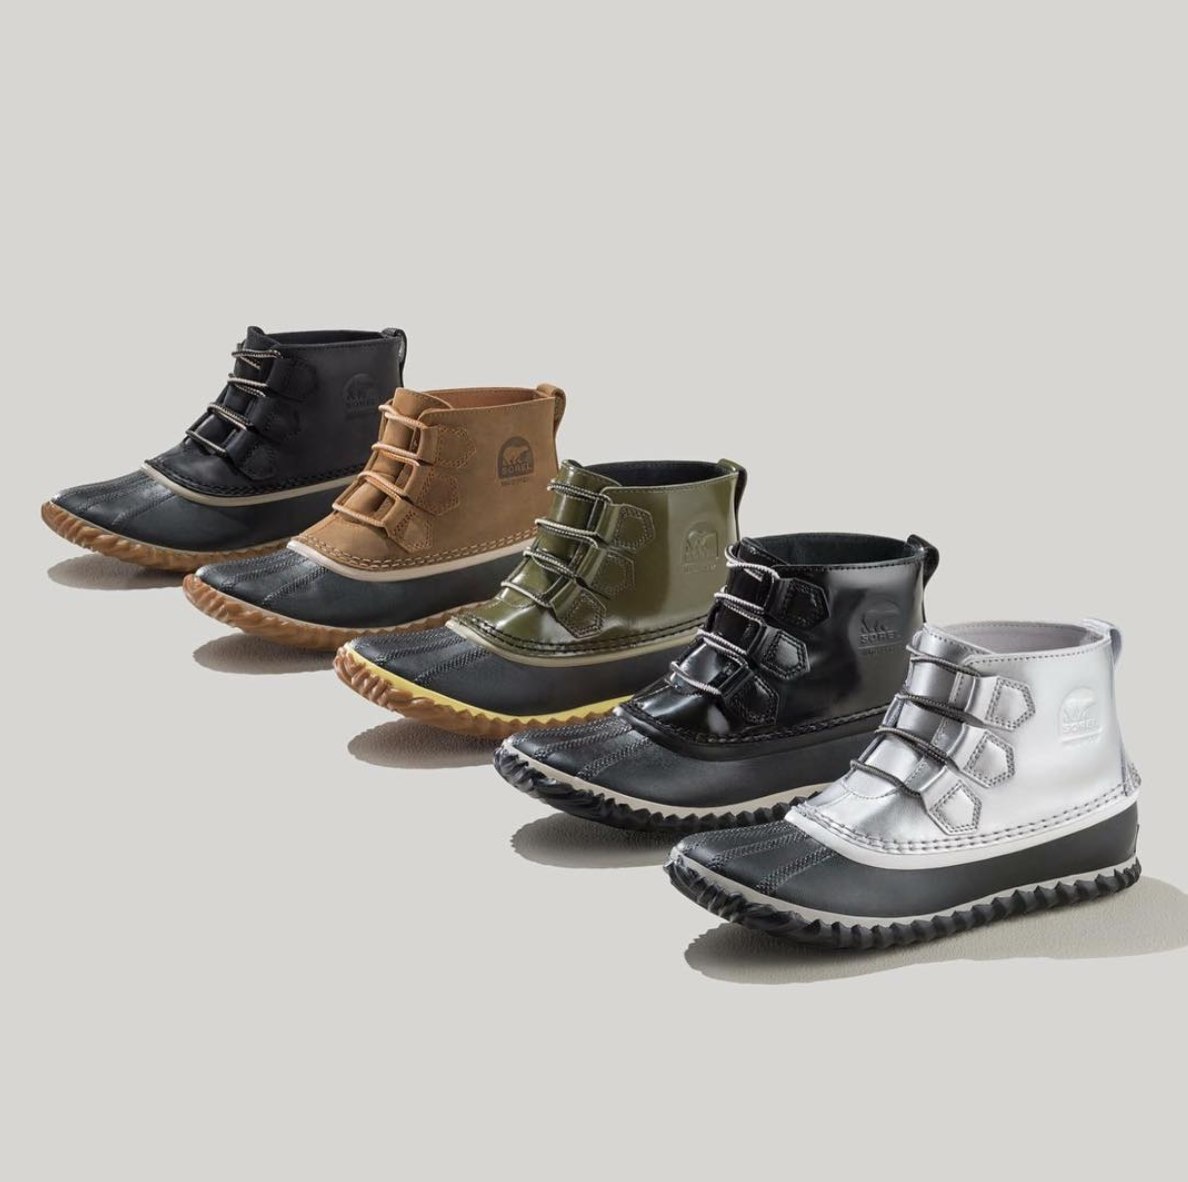 five of the short bootie with laces and rubber soles in black, brown, green, black, and silver